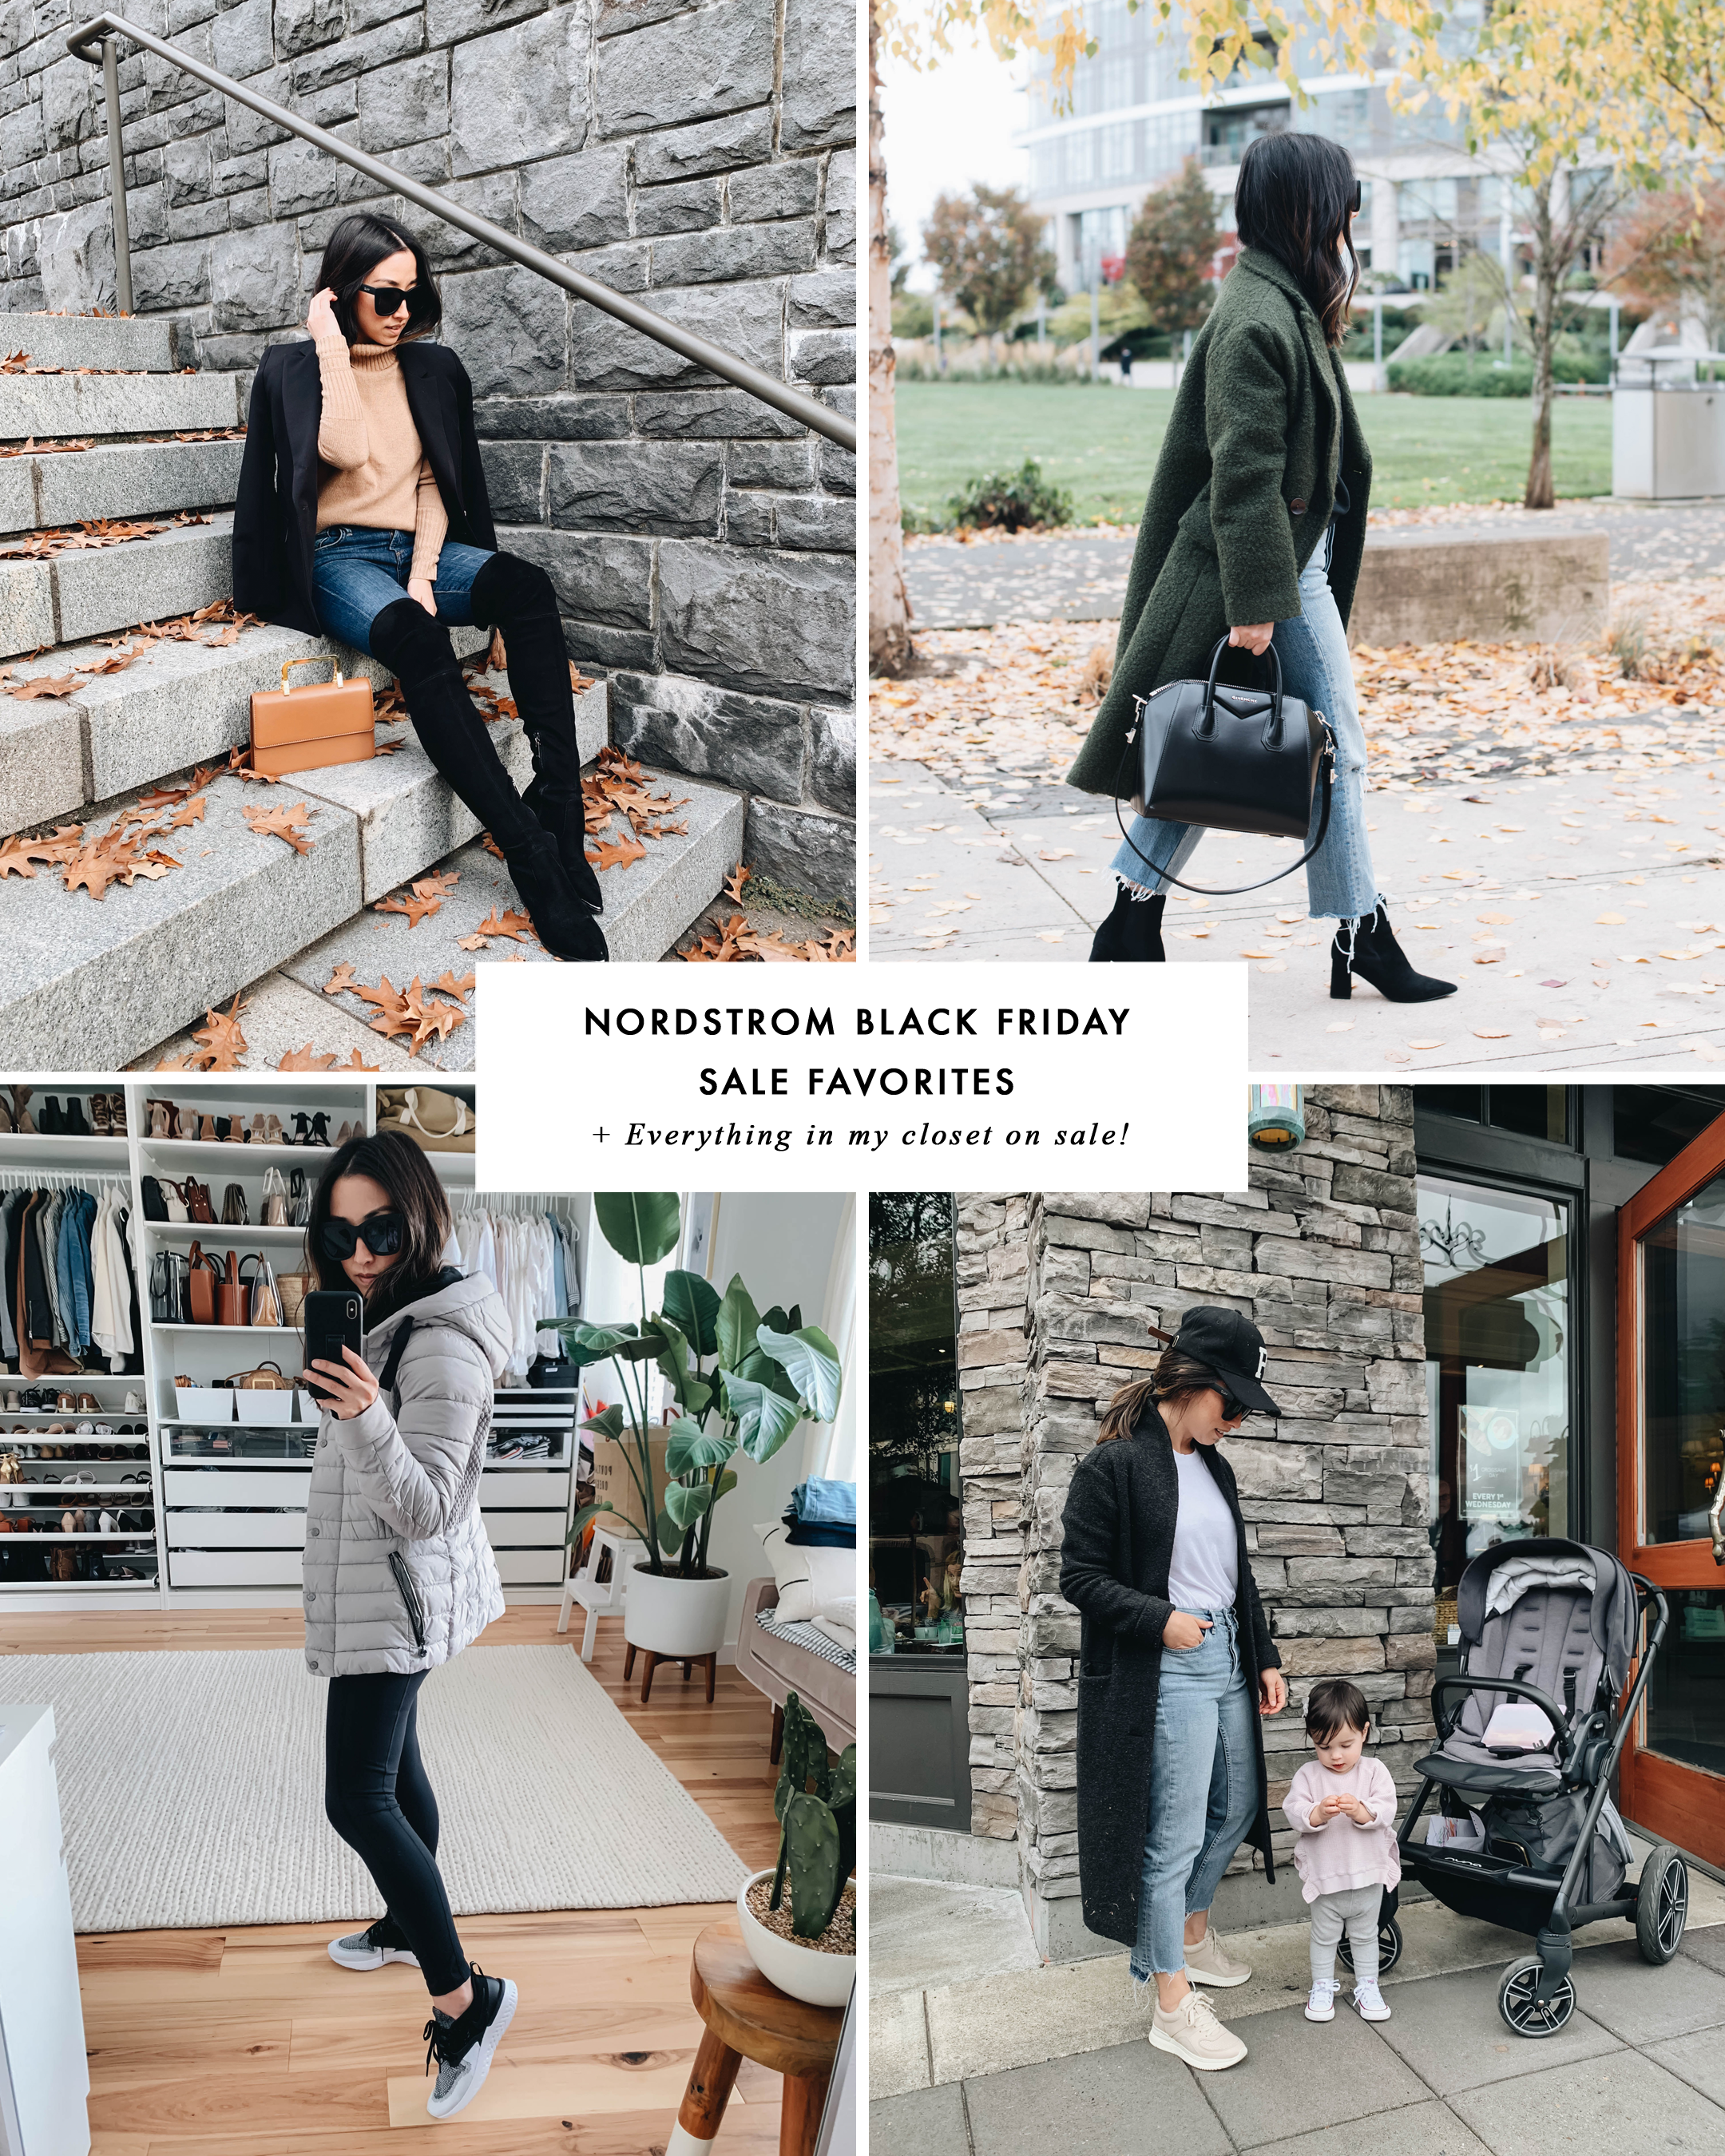 Nordstrom Black Friday sale favorites